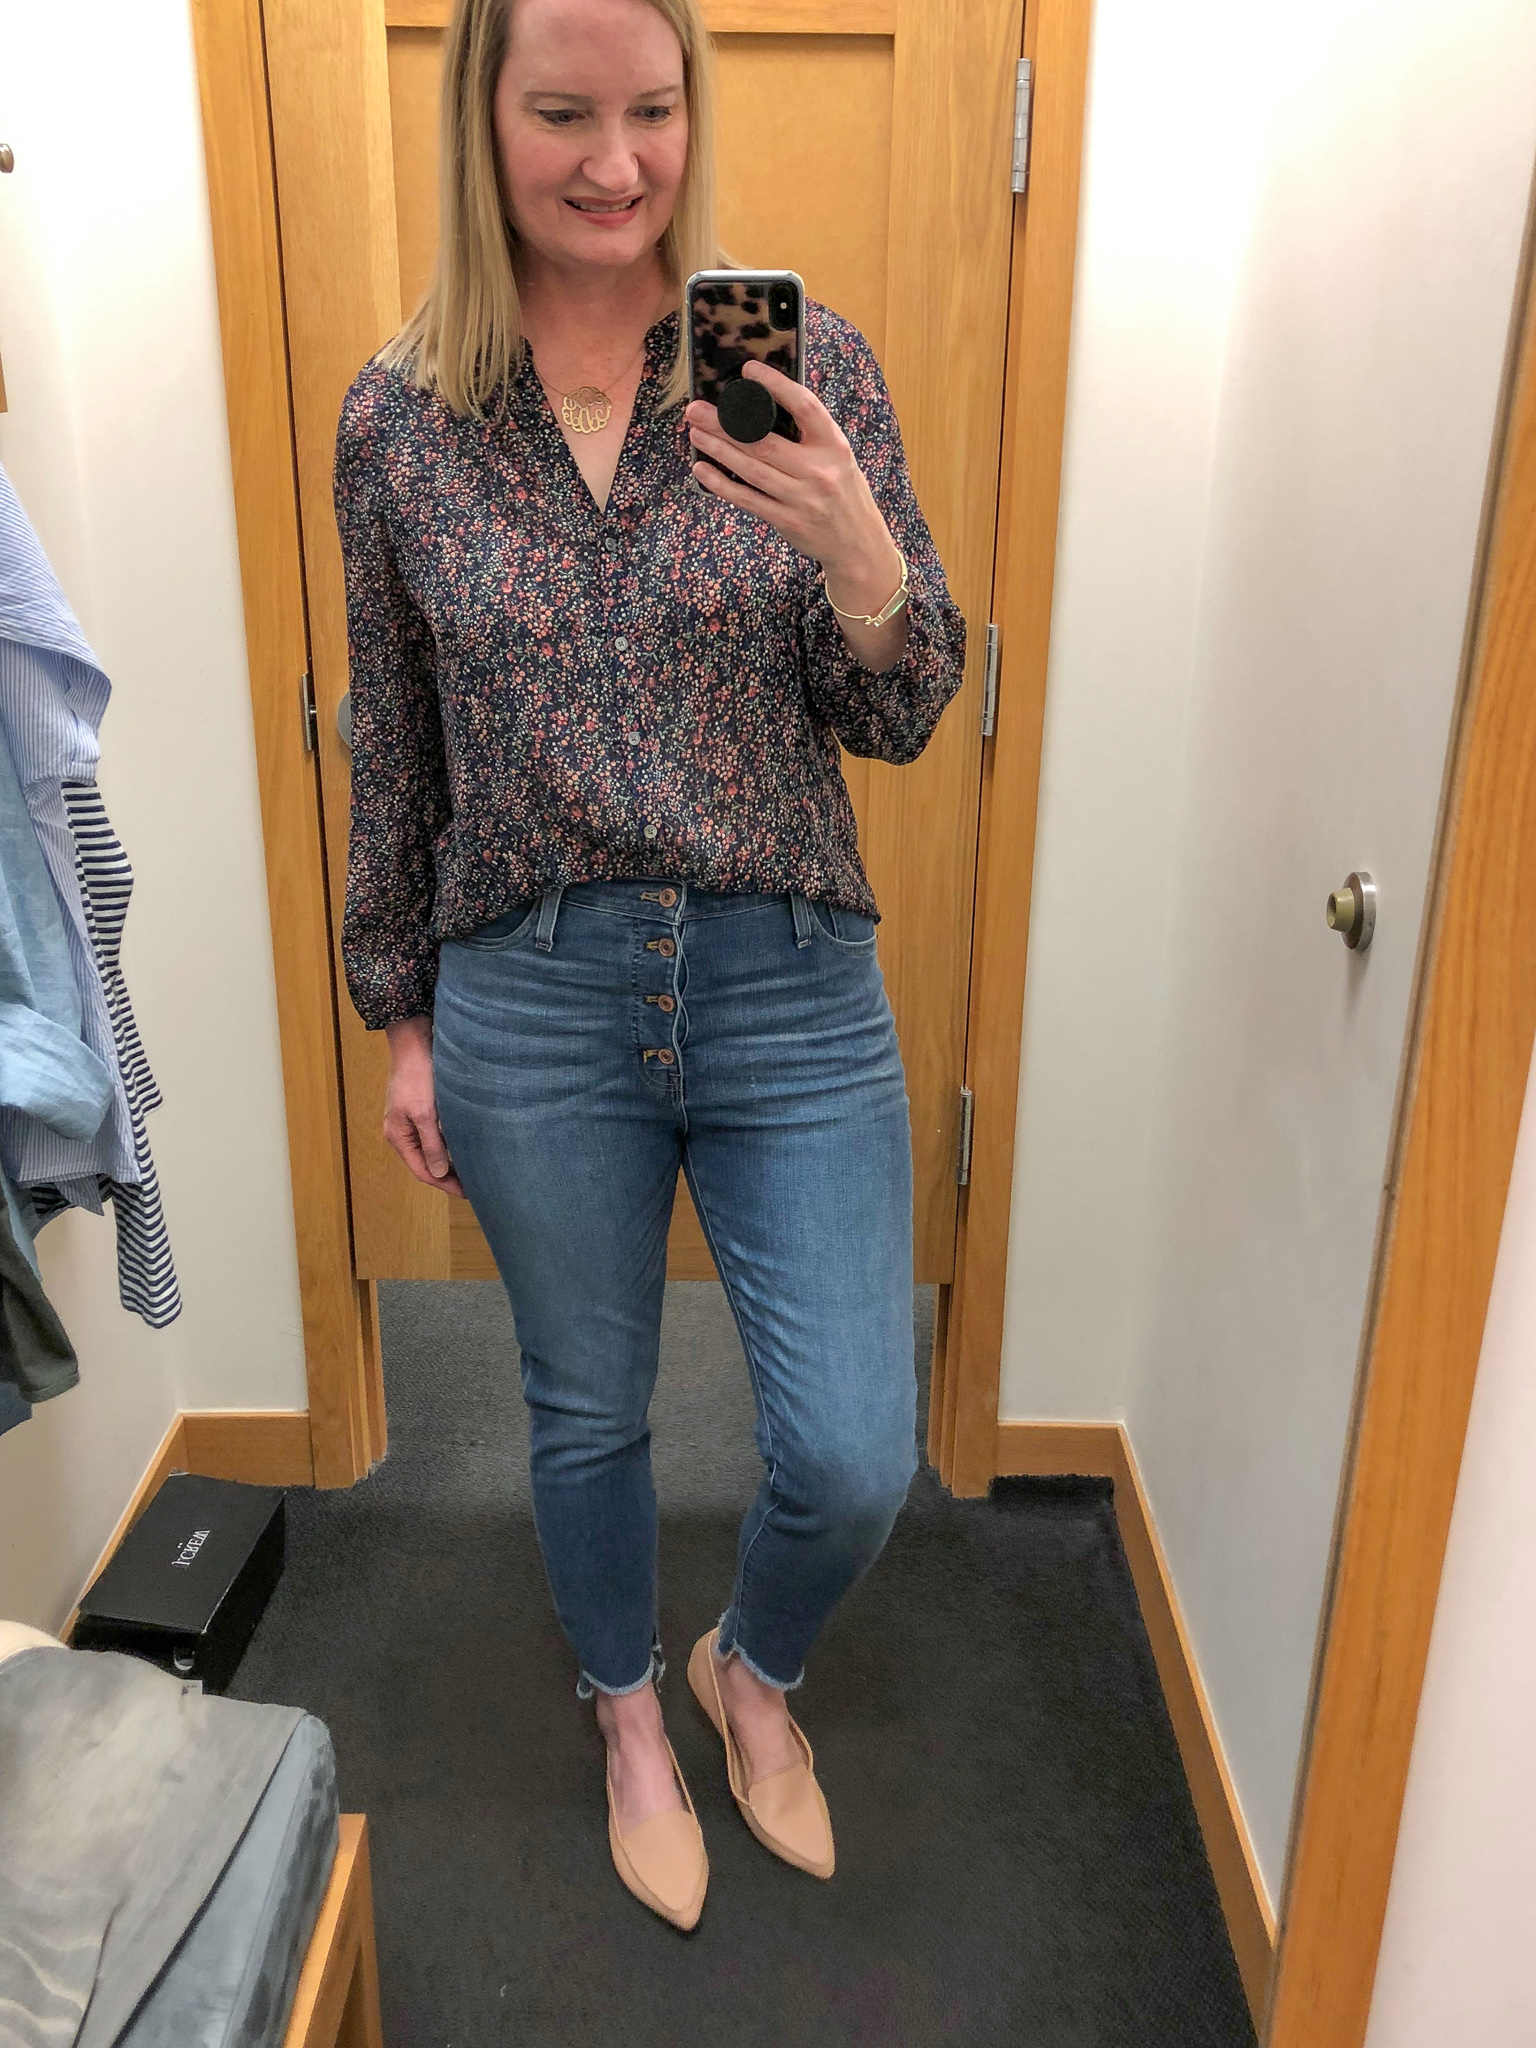 J Crew Factory Fitting Room Reviews March 2019 11